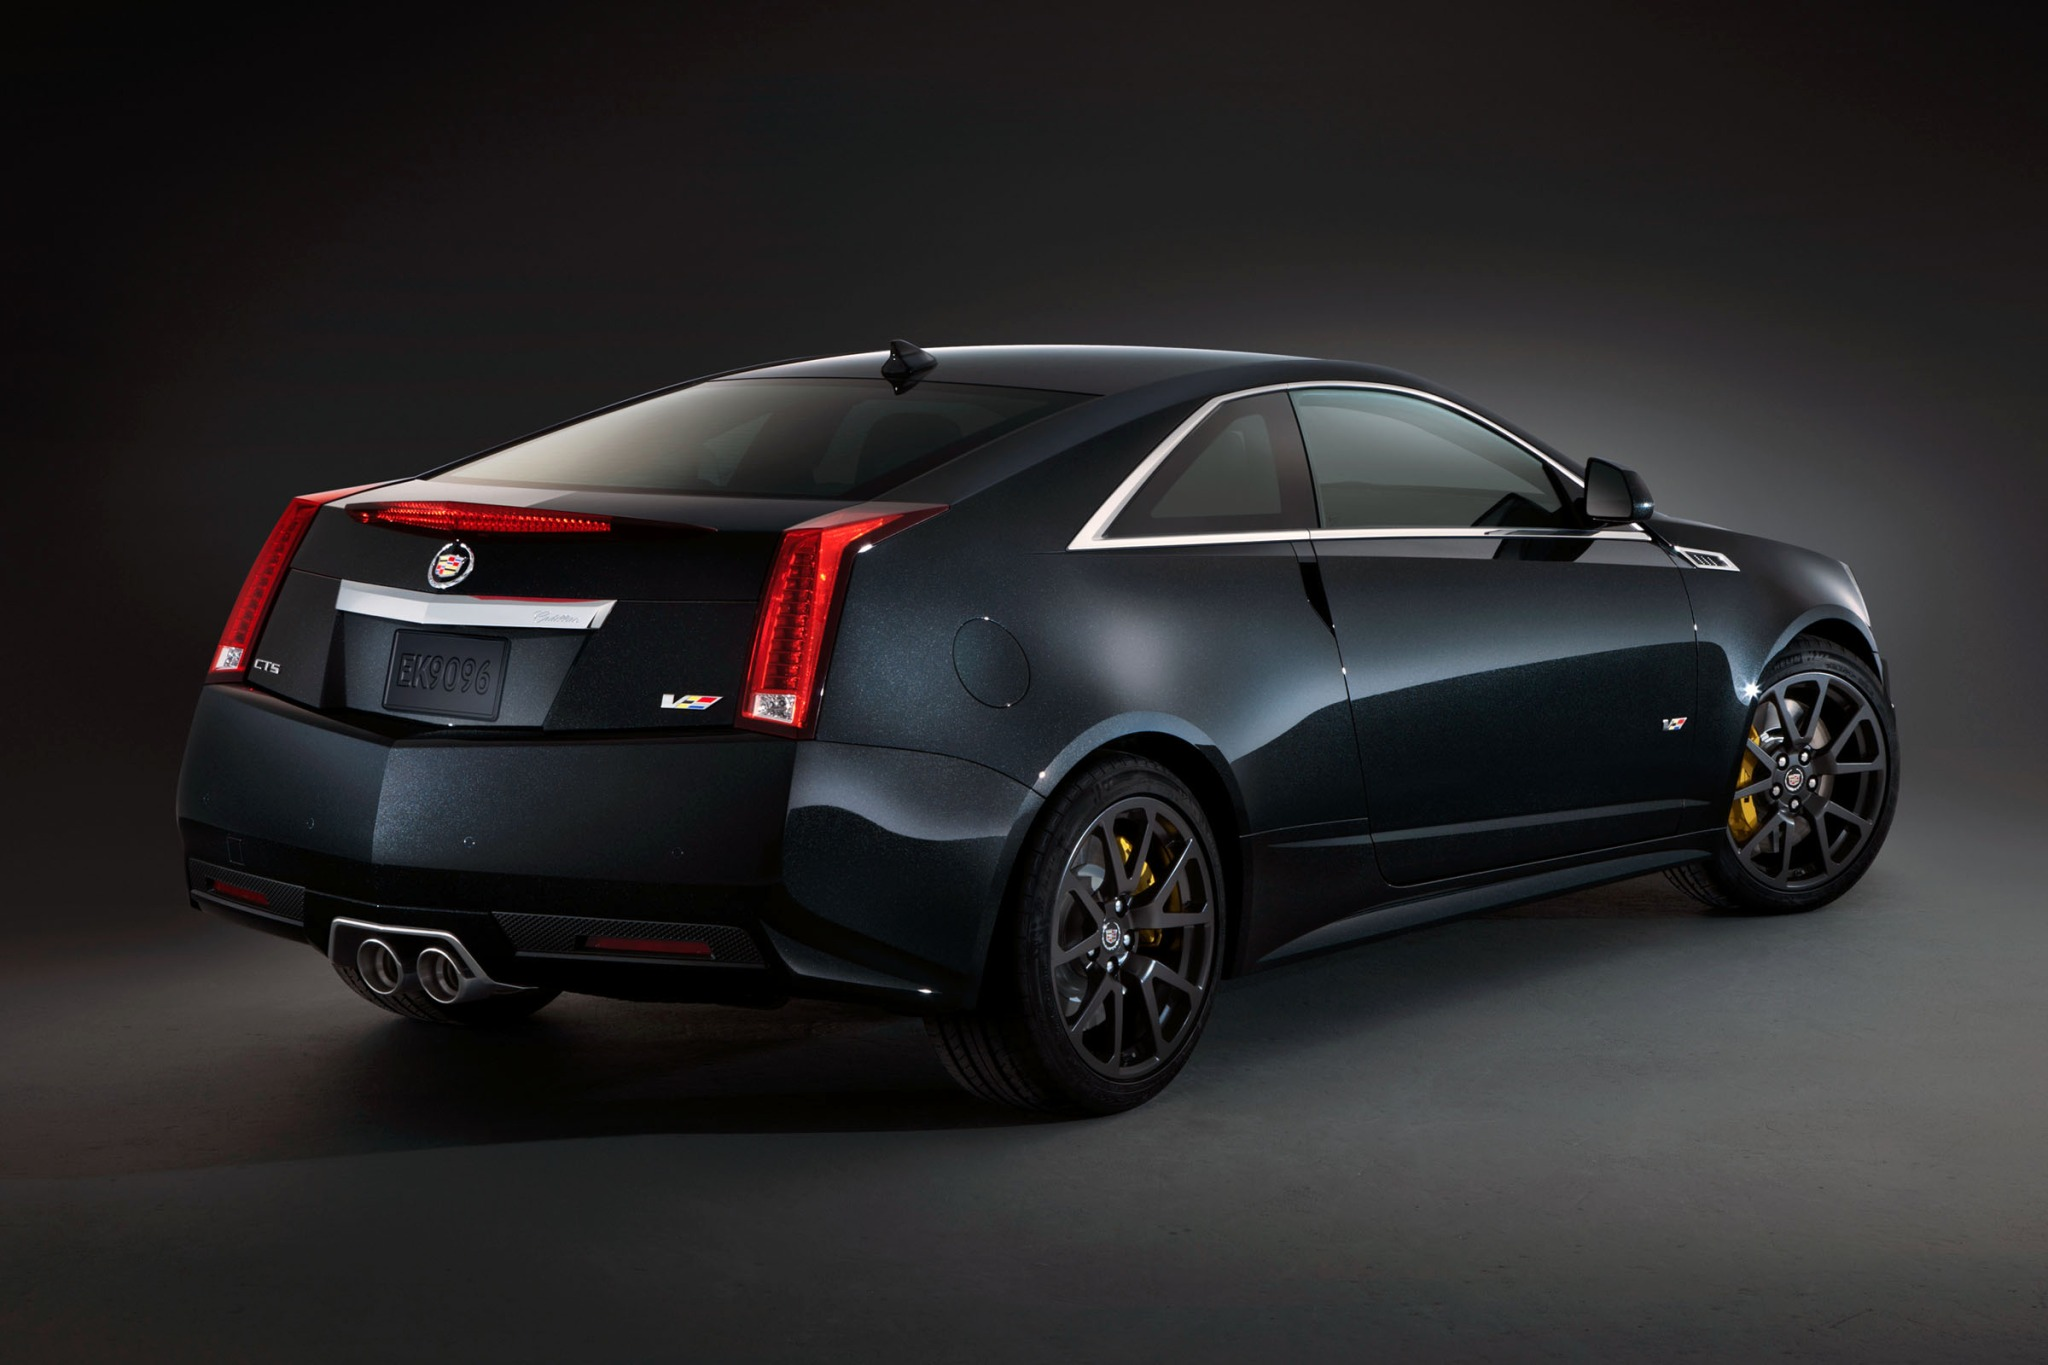 2012 Cadillac CTS-V Coupe exterior #5